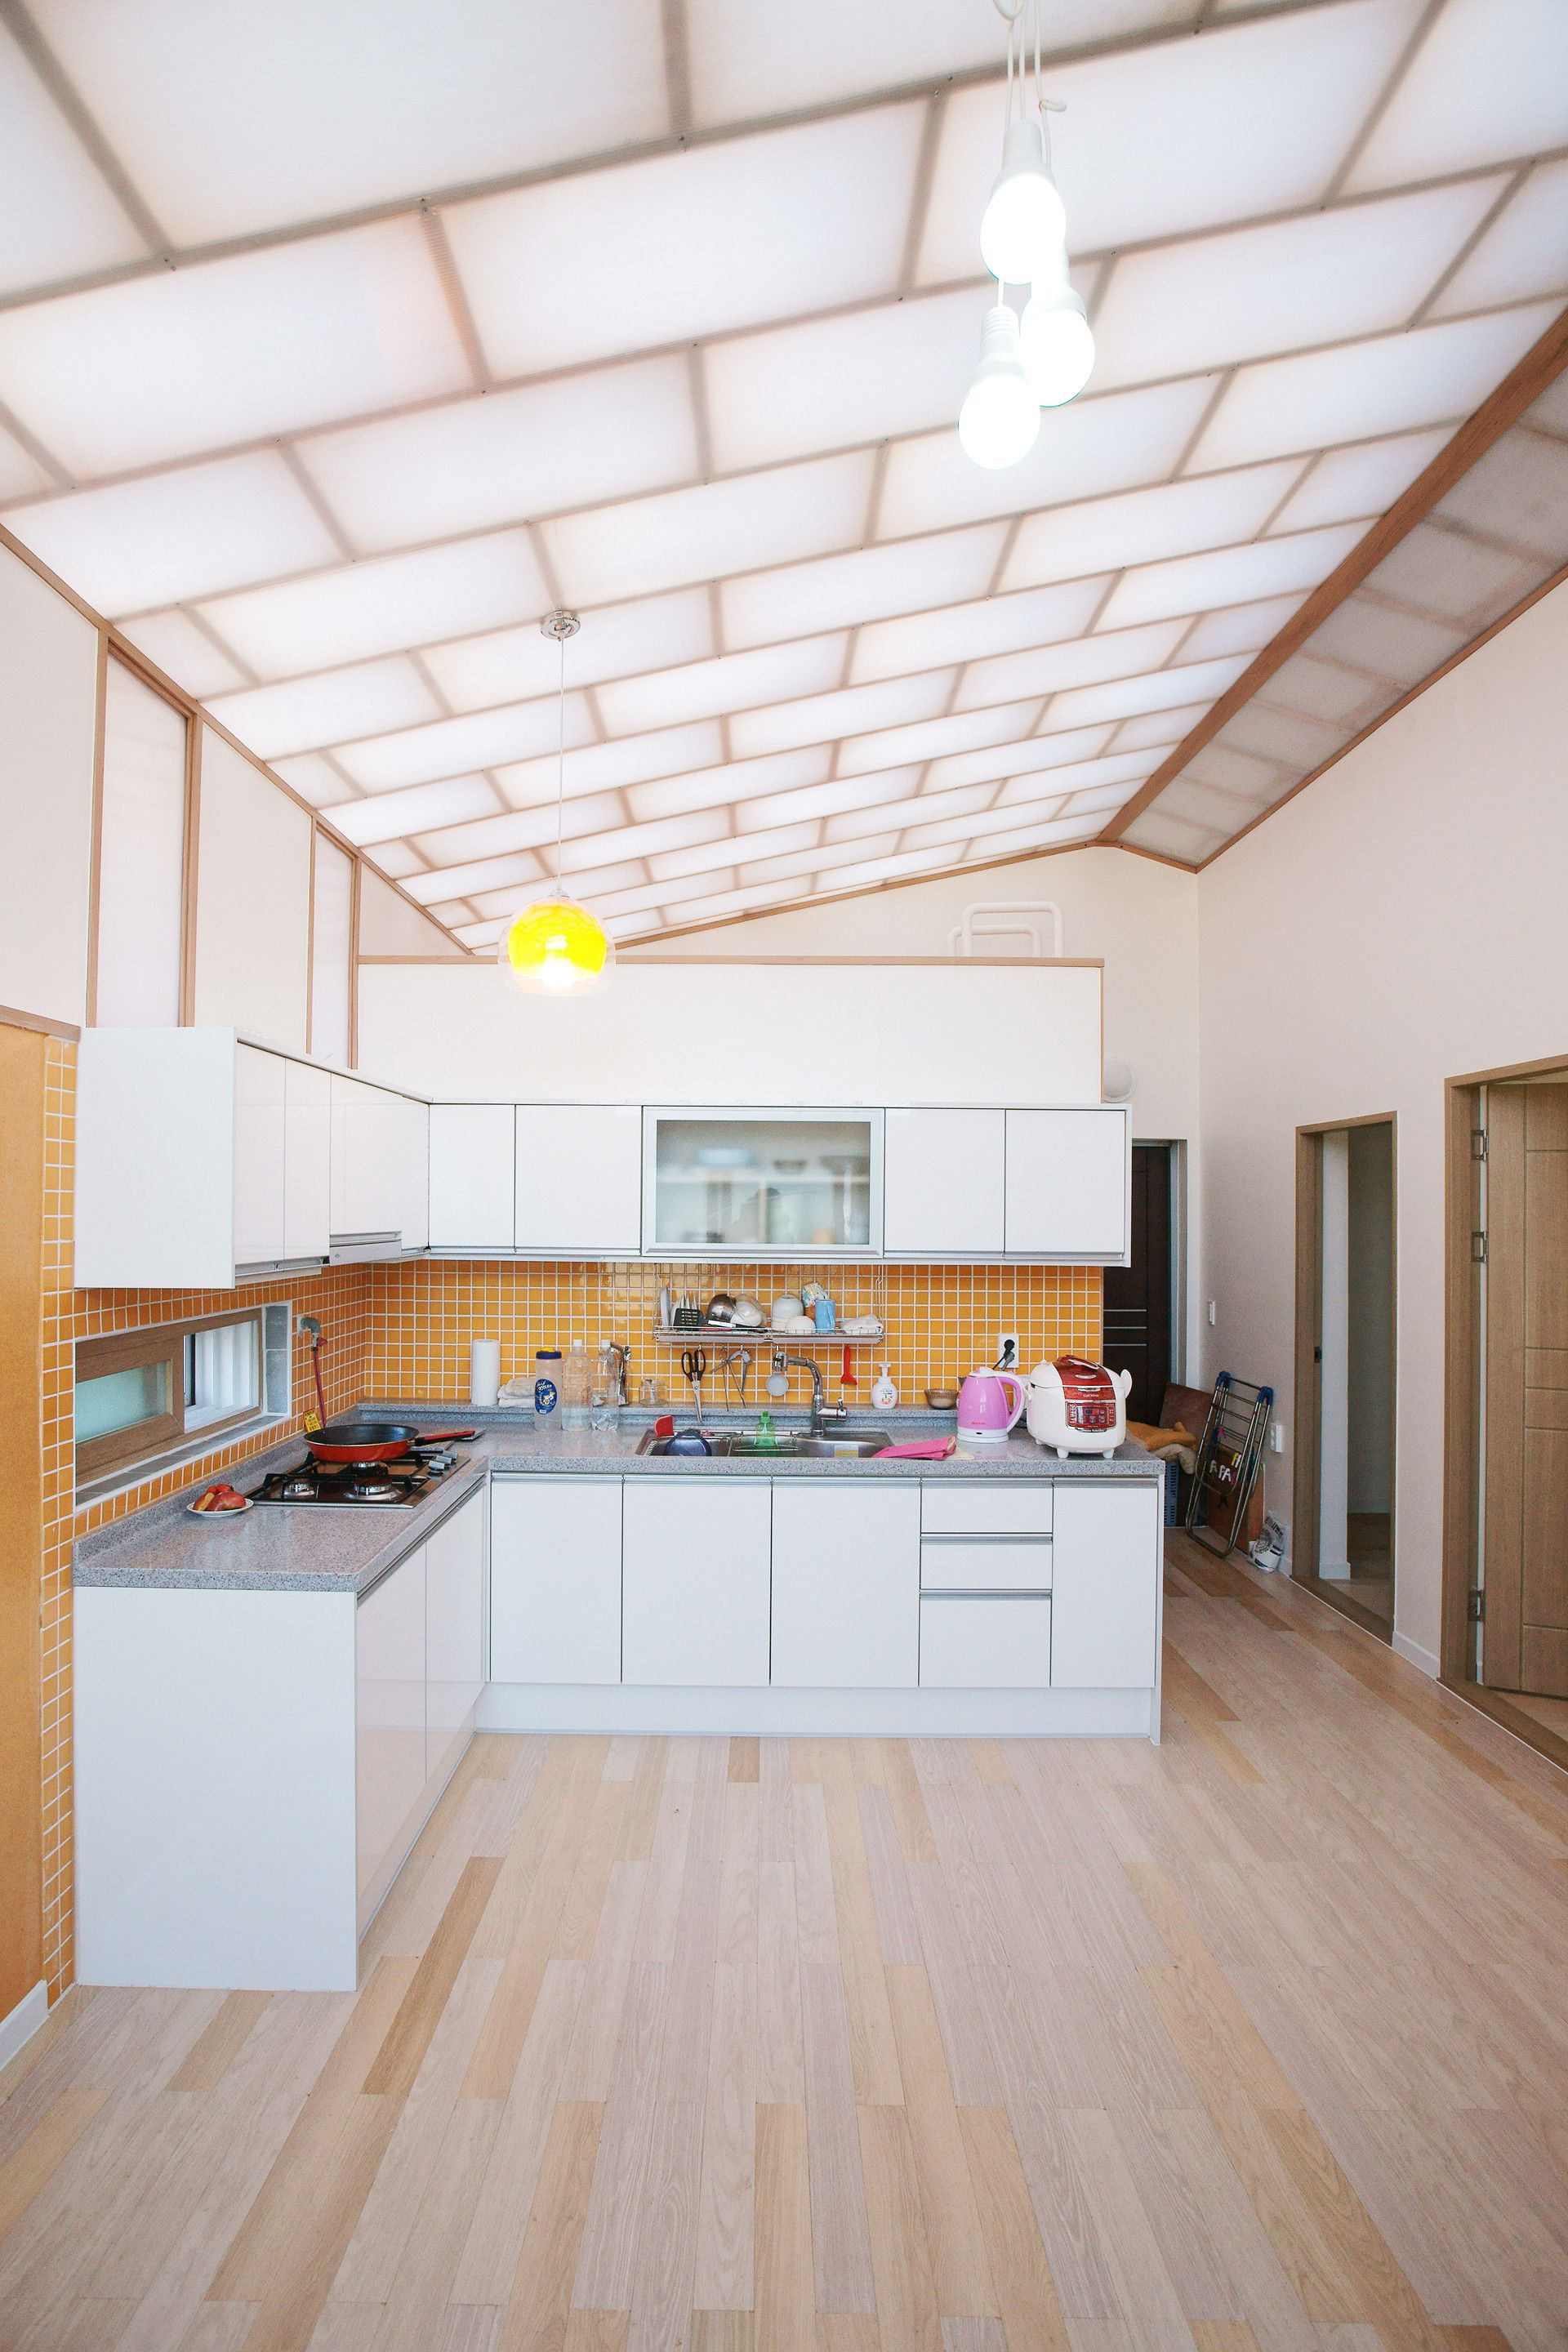 Low Cost House Design Awesome Low Cost House Jya Rchitects Mue & Zijn Architects